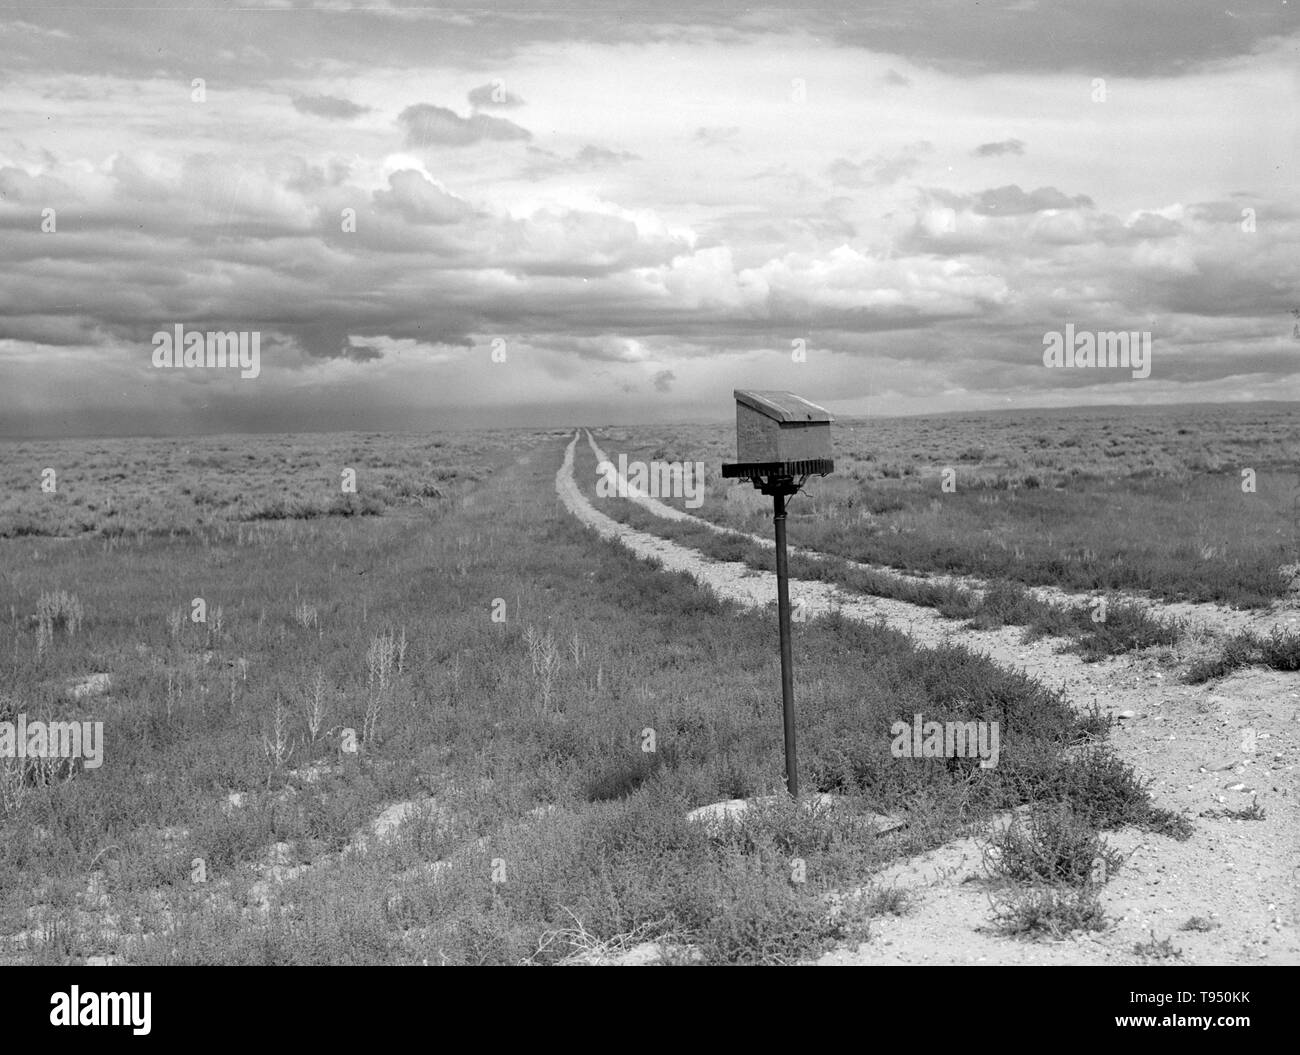 """Entitled: """"Ranch mailbox near Farson, Wyoming."""" Before the introduction of rural free delivery (RFD) by the Post Office in 1896, many rural residents had no access to the mail unless they collected it at a post office located many miles from their homes or hired a private express company to deliver it. For this reason, mailboxes did not become popular in rural America until curbside RFD mail delivery by the Post Office was an established service. Stock Photo"""